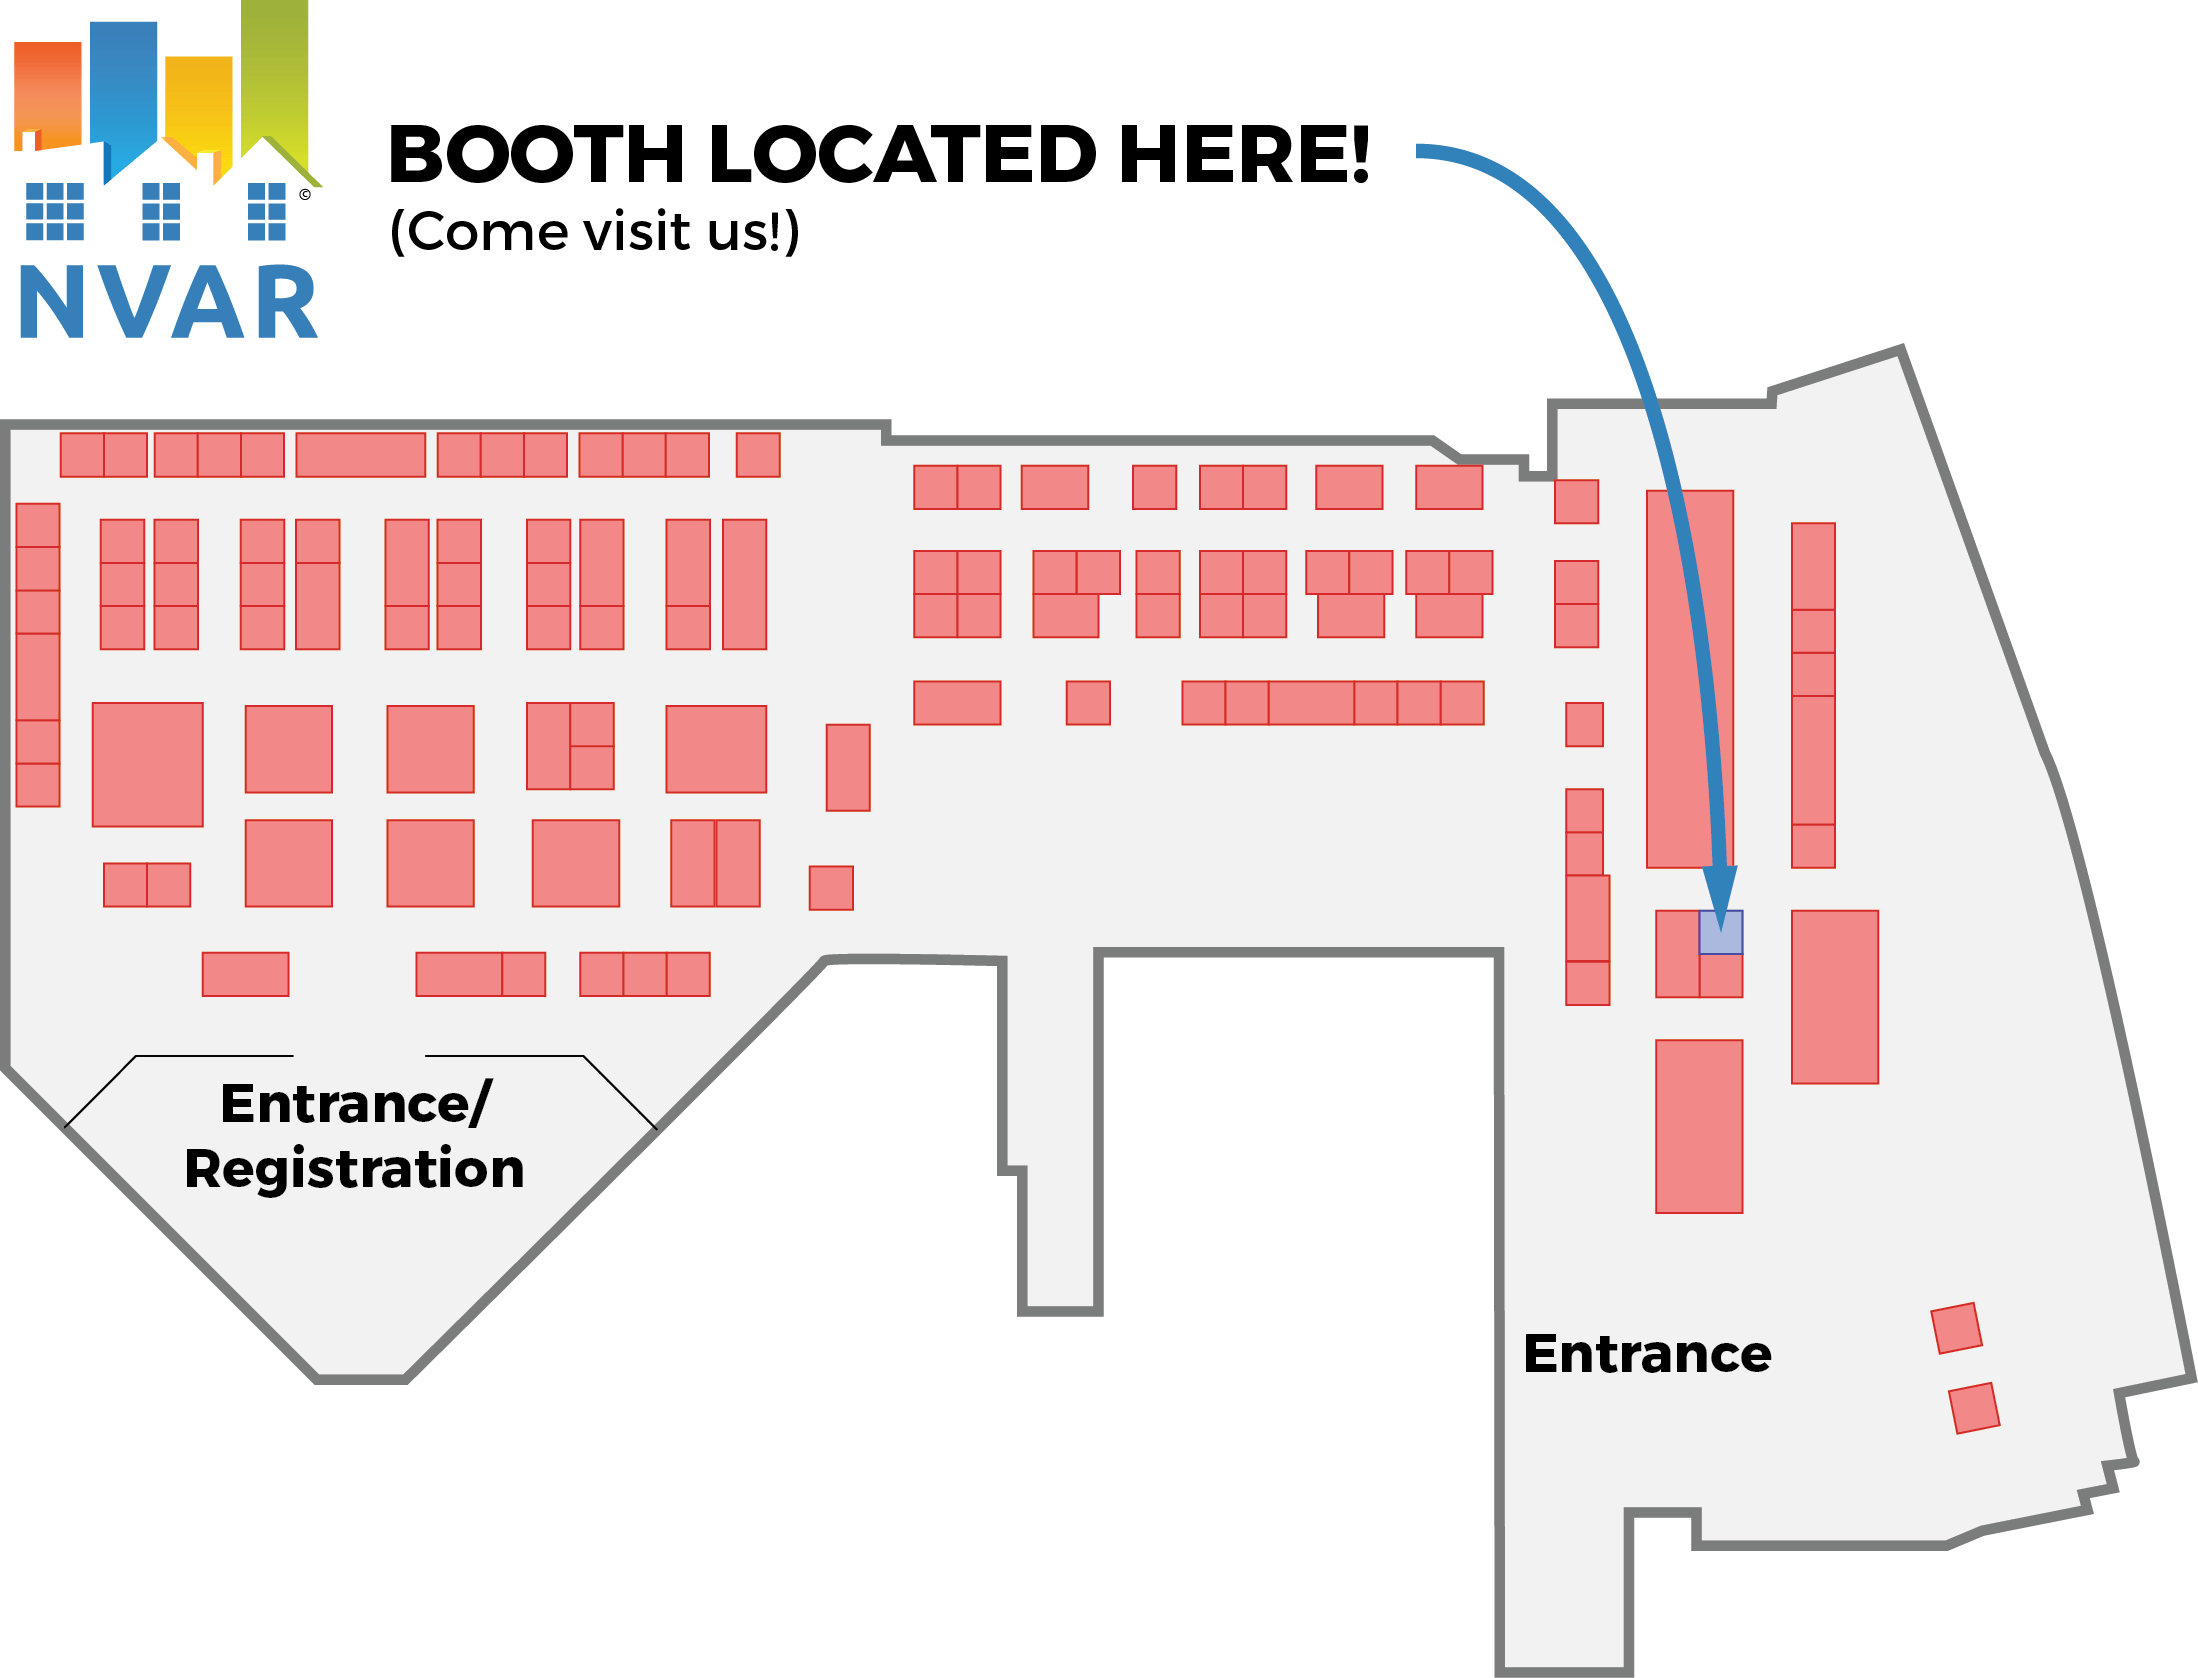 map of trade expo with nvar booth highlighted